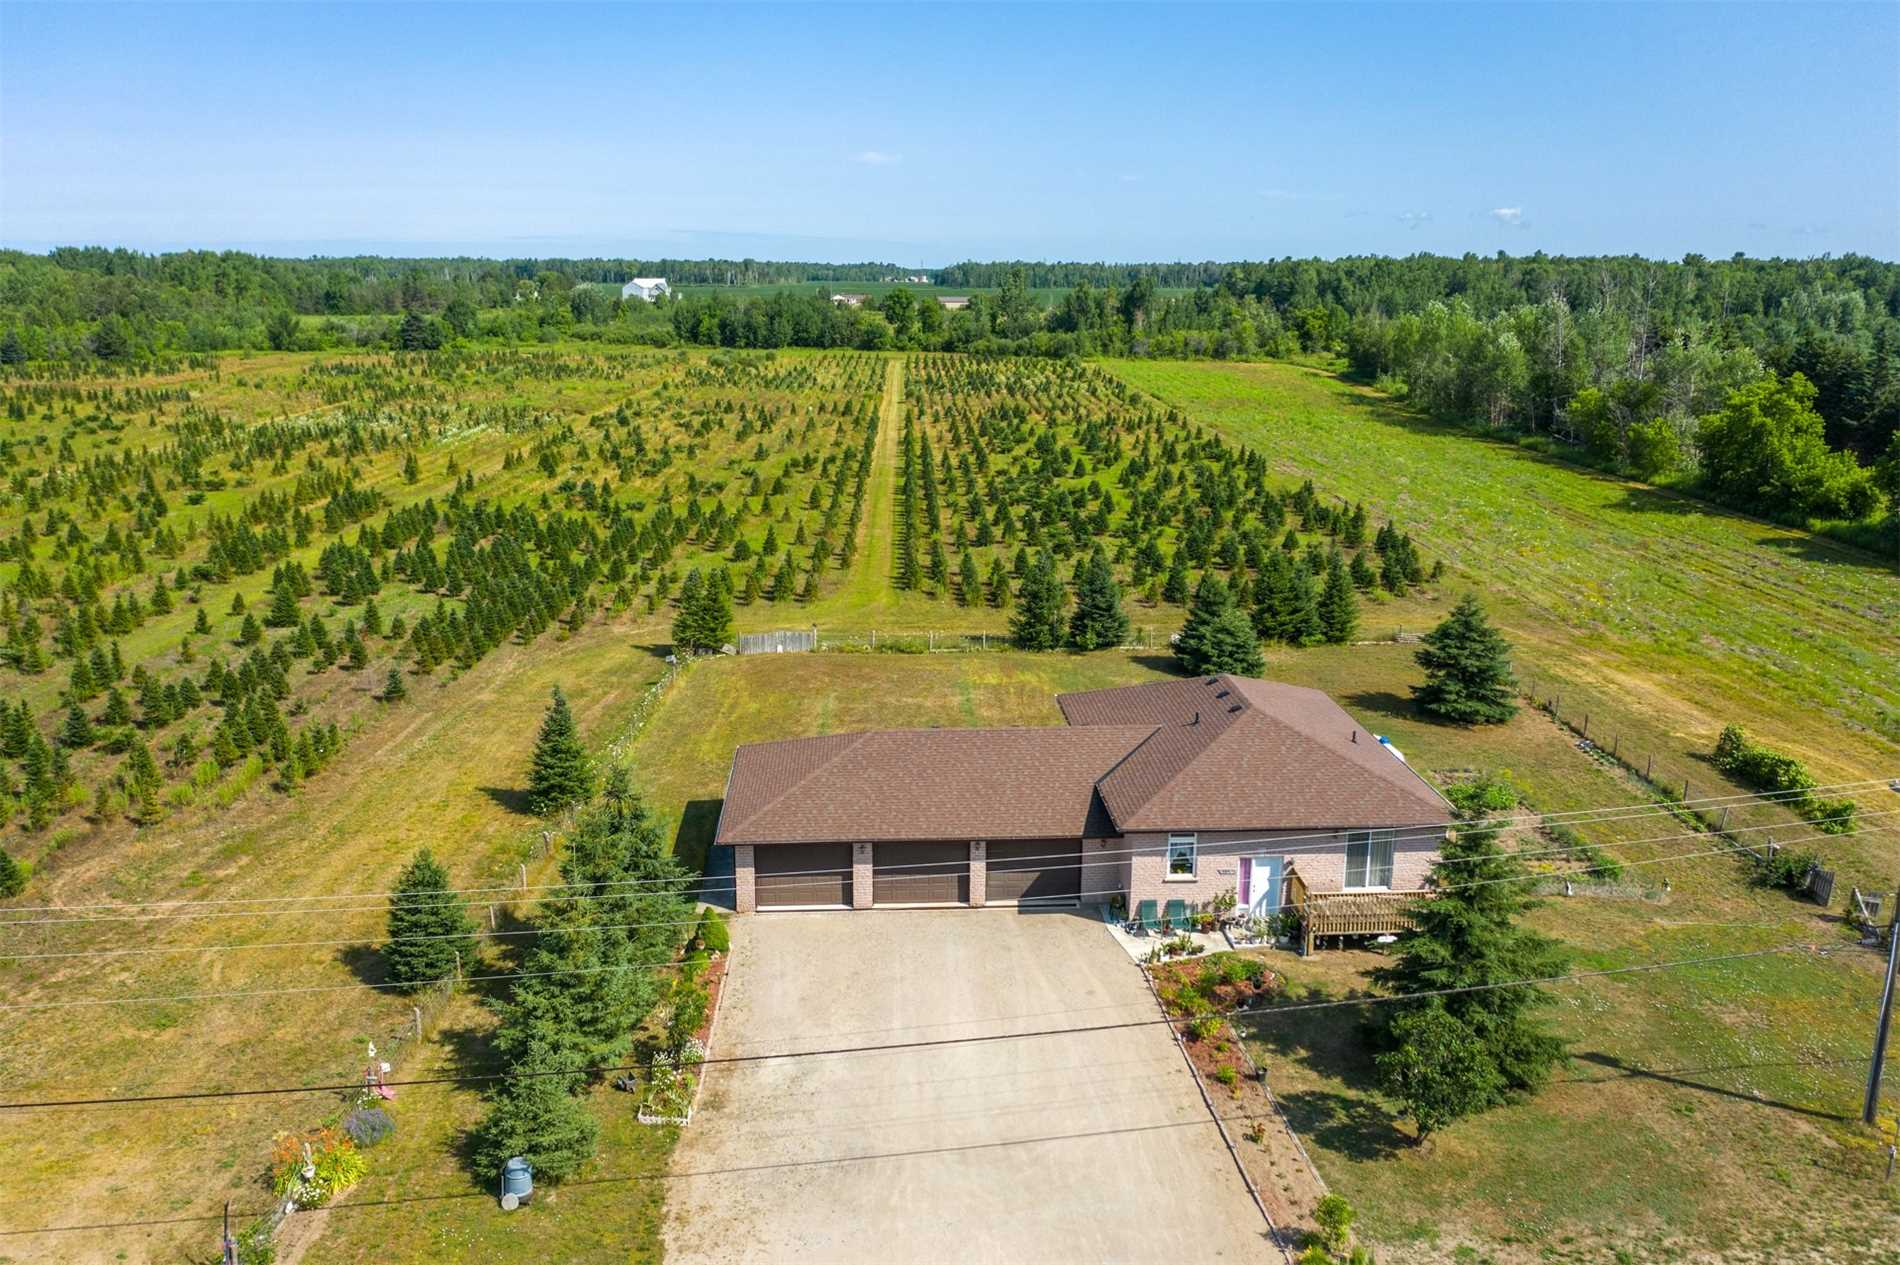 Remarkable Home On Over 100 Acre Lot. Bright & Open Spaces In Well Maintained Bungalow. Massive Living/Dining Rm W/Fireplace & W/O To Large Deck. Kitchen Provides Ample Cupboard & Counterspace W/Breakfast Bar. Inside Entry From The 3 Car Garage. 2 Spacious Bdrms, Master Included W/I Closet & Full Ensuite. Finished Basement W/Only Floors To Be Installed Features Huge Laundry Rm, Storage & Extra Living Space. W/O To Enjoy The Picturesque Property That